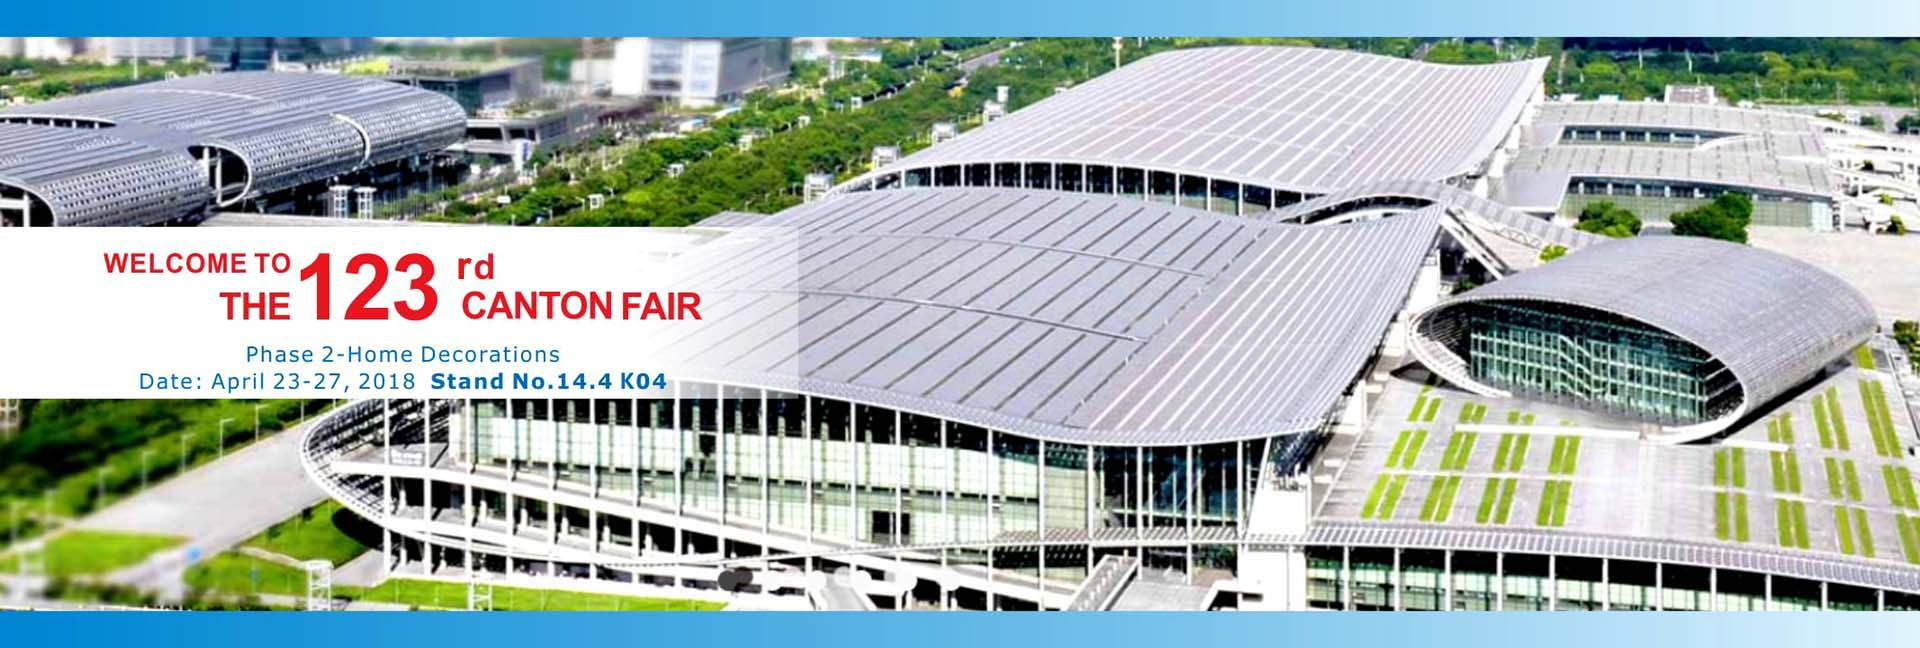 123th cantonfair